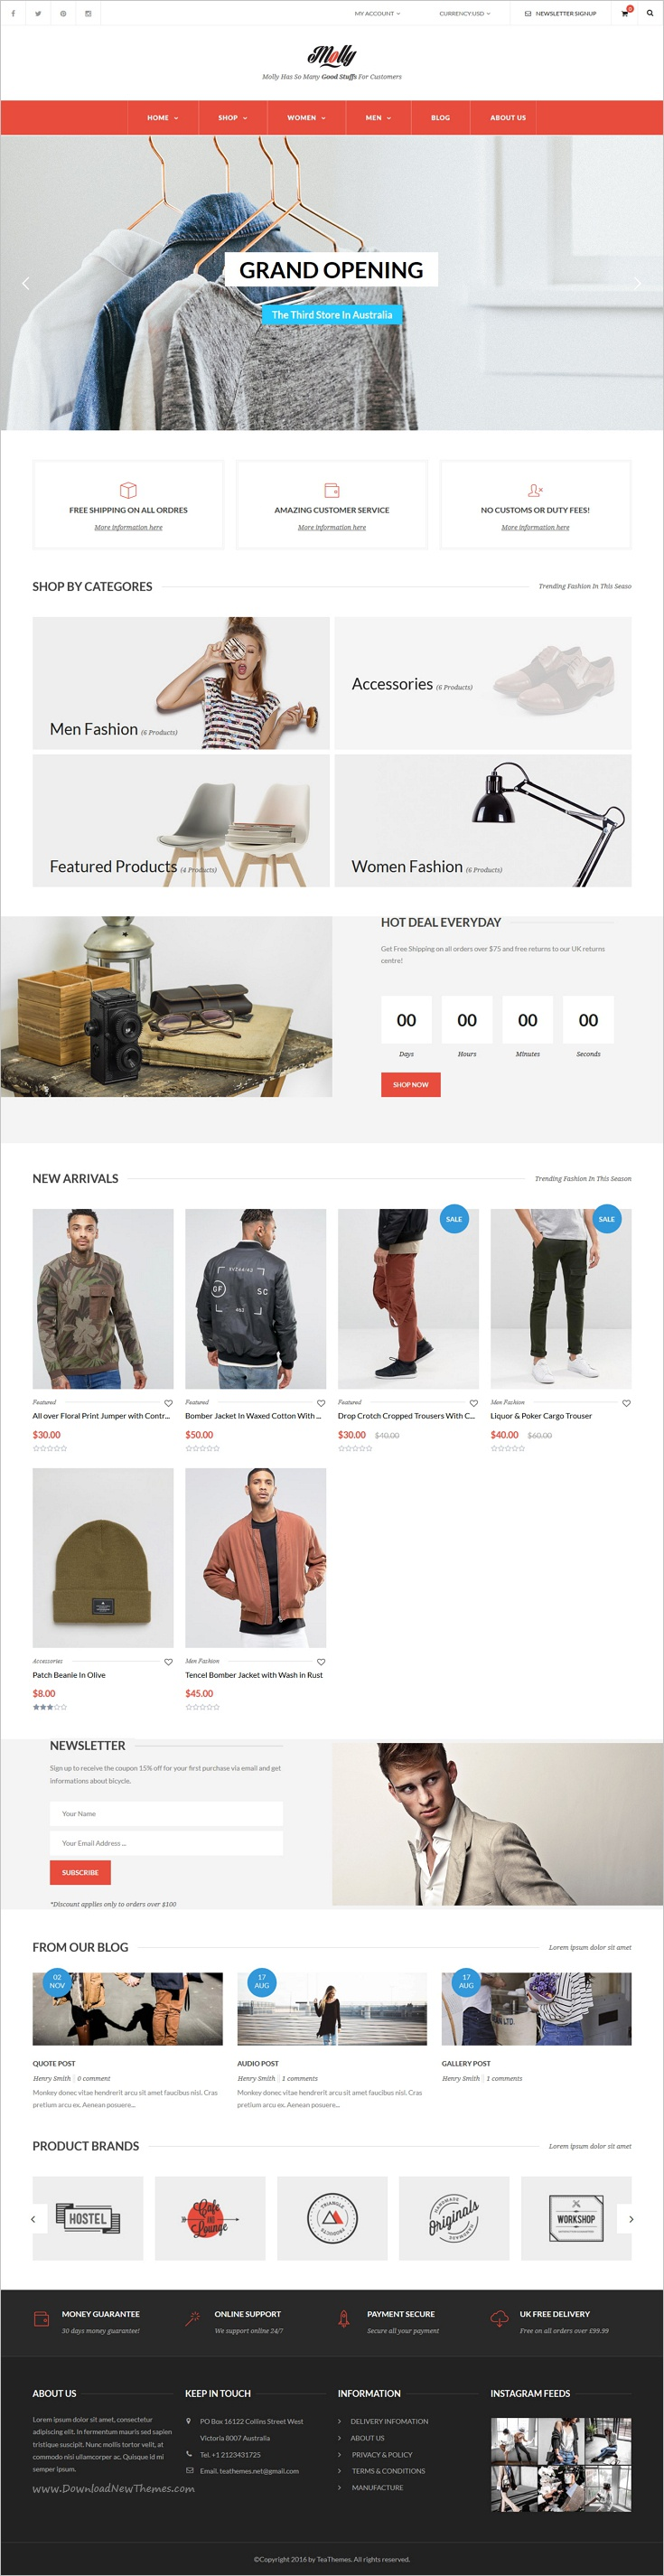 Molly is a modern and clean design awesome #Shopify theme for #webmaster multipurpose #eCommerce website with 18+ unique homepage layouts download now➩ https://themeforest.net/item/molly-multipurpose-responsive-shopify-themes/18974581?ref=Datasata